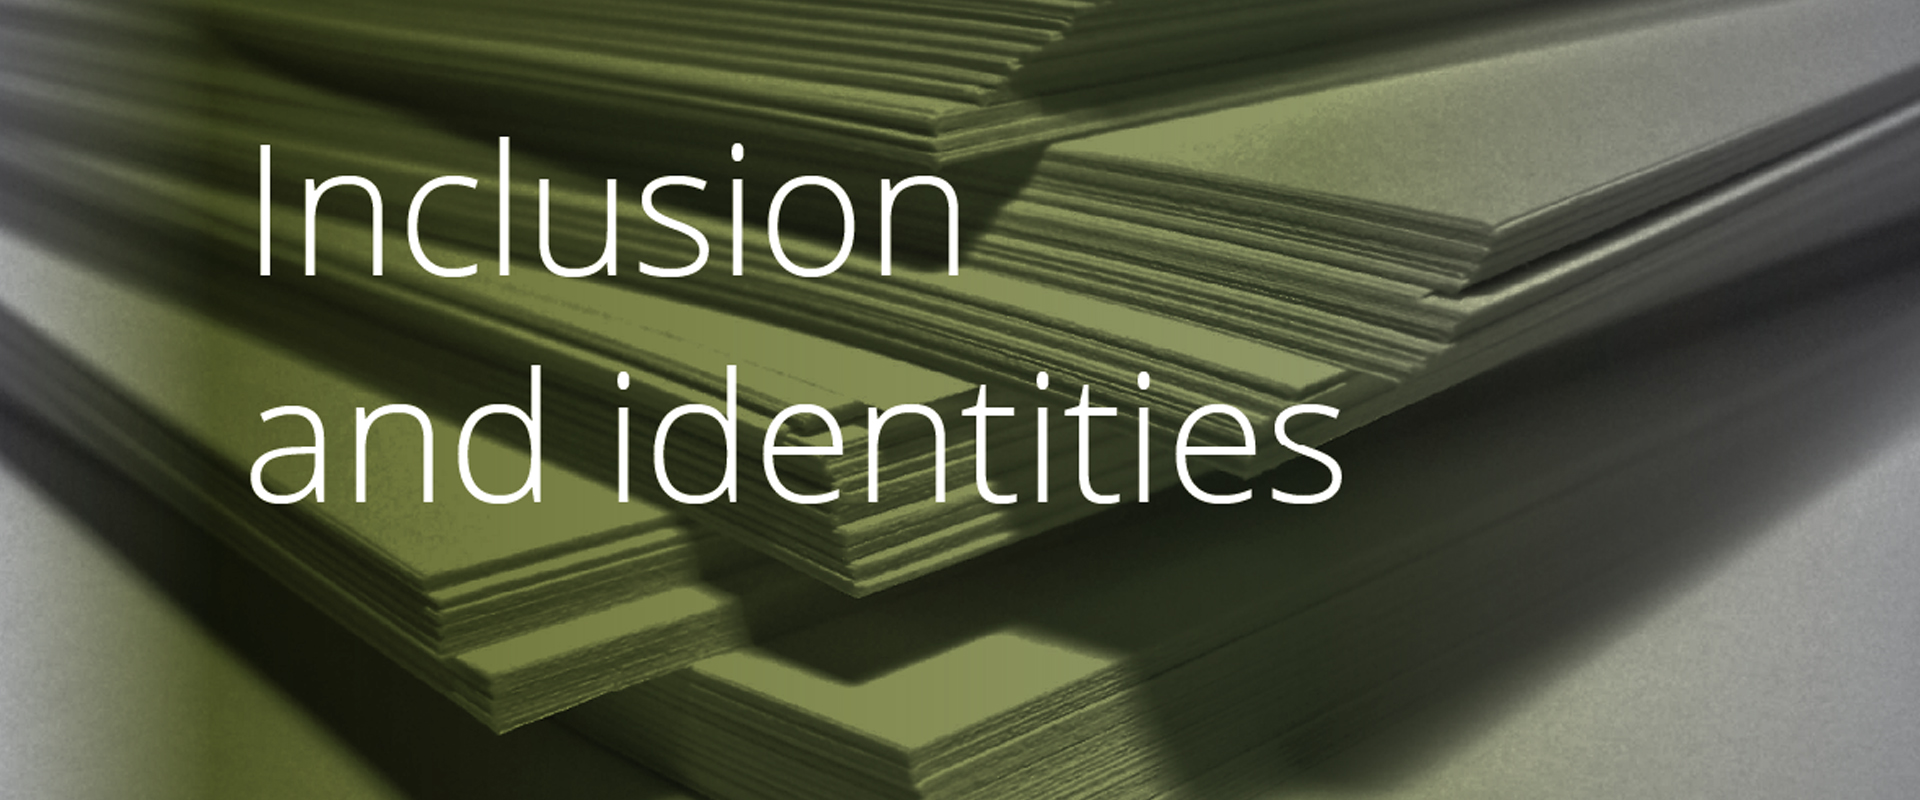 Inclusion and identities